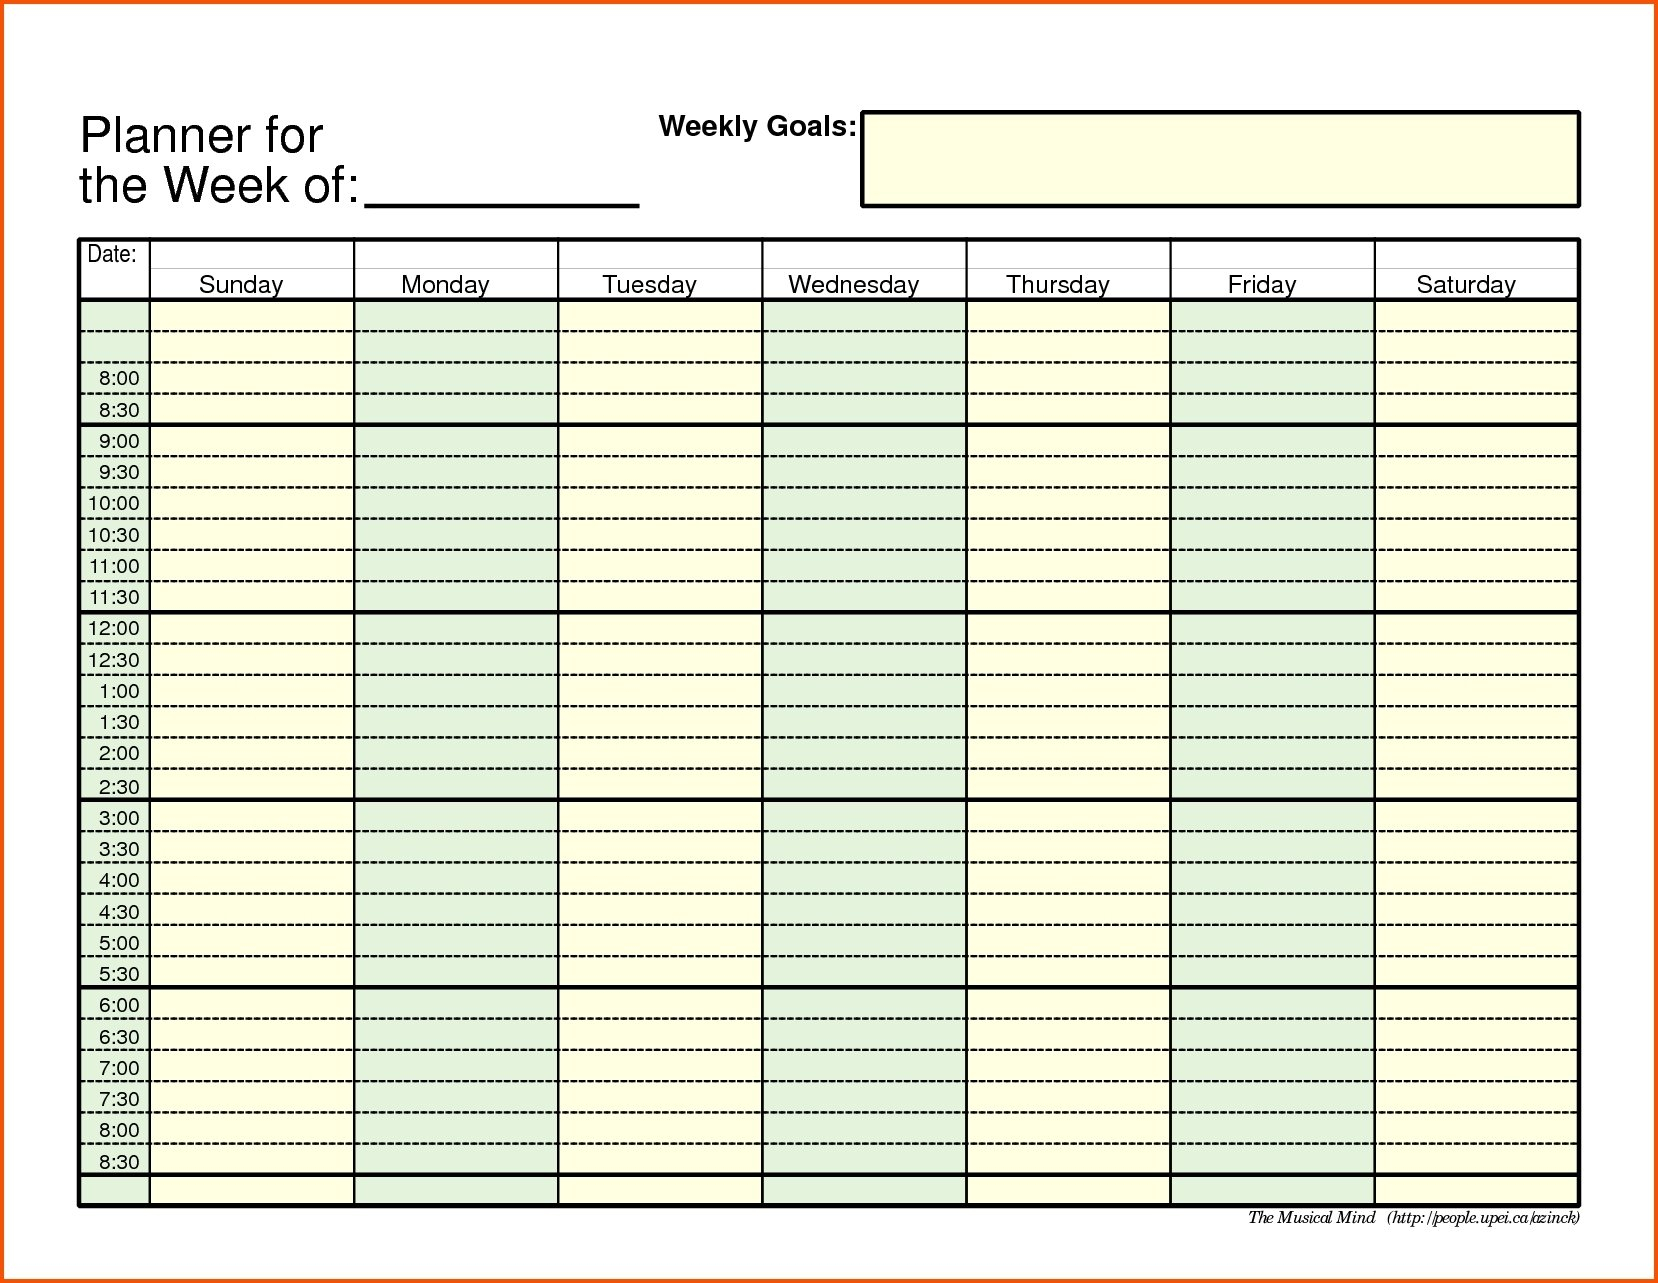 Weekly Schedule With Time Slots – Calendar Inspiration Design Free Printable Weekly School Schedule With Time Slots